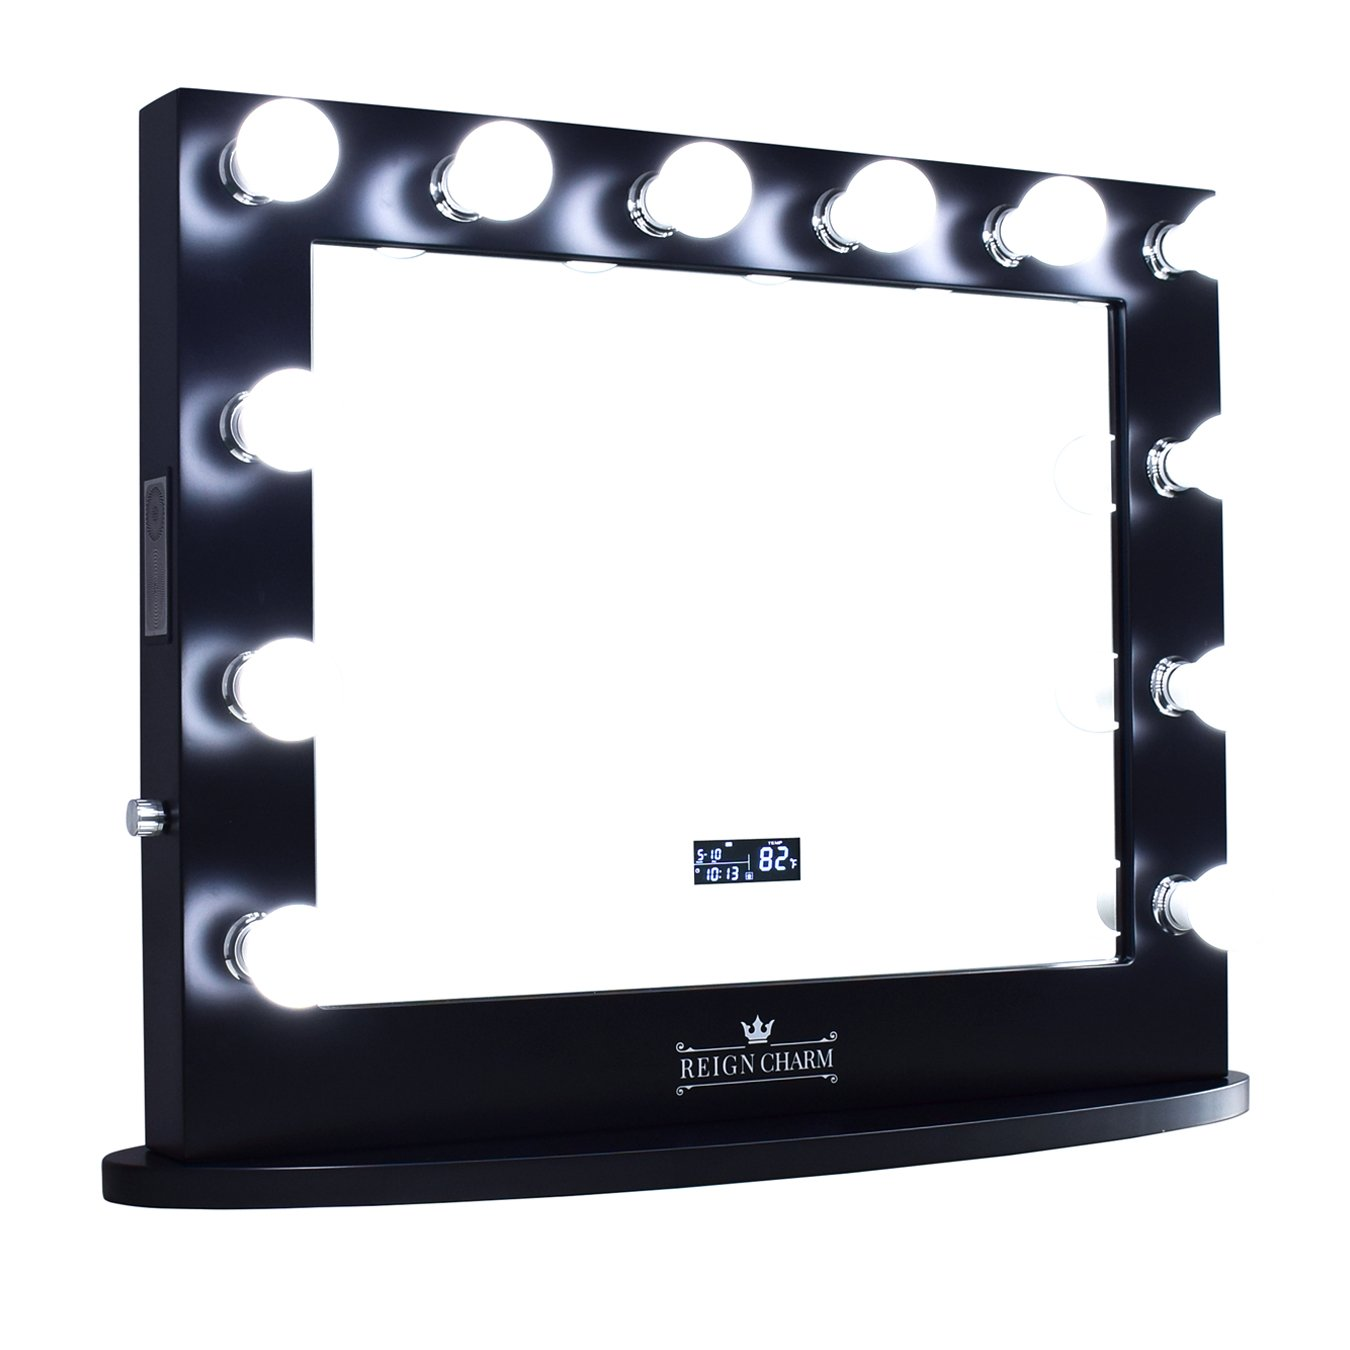 ReignCharm Hollywood Vanity Mirror with 12 オープニング 大放出セール L Speakers Bluetooth 大特価